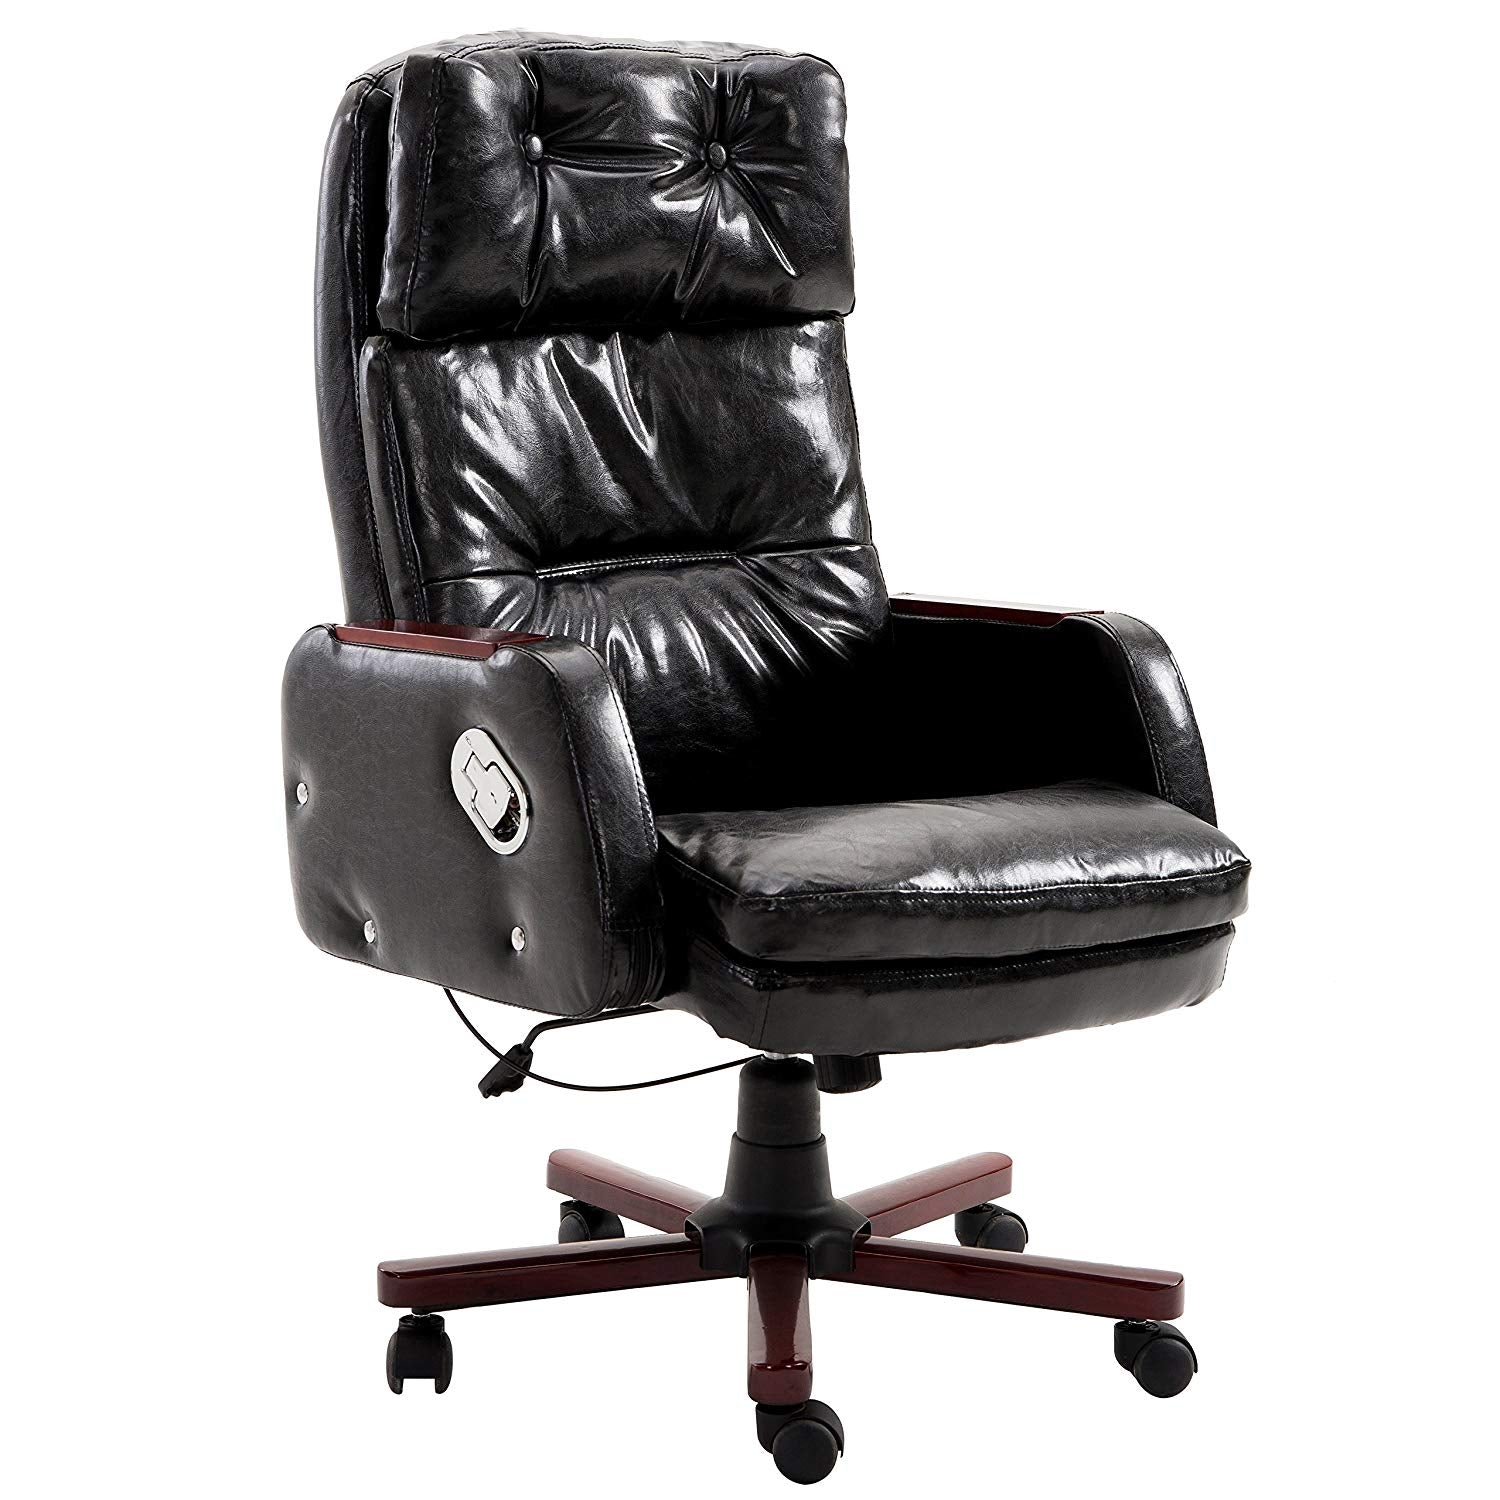 Luxury PU Leather Executive Swivel Computer Chair Office Desk Chair with Latch Recline Mechanism, Black